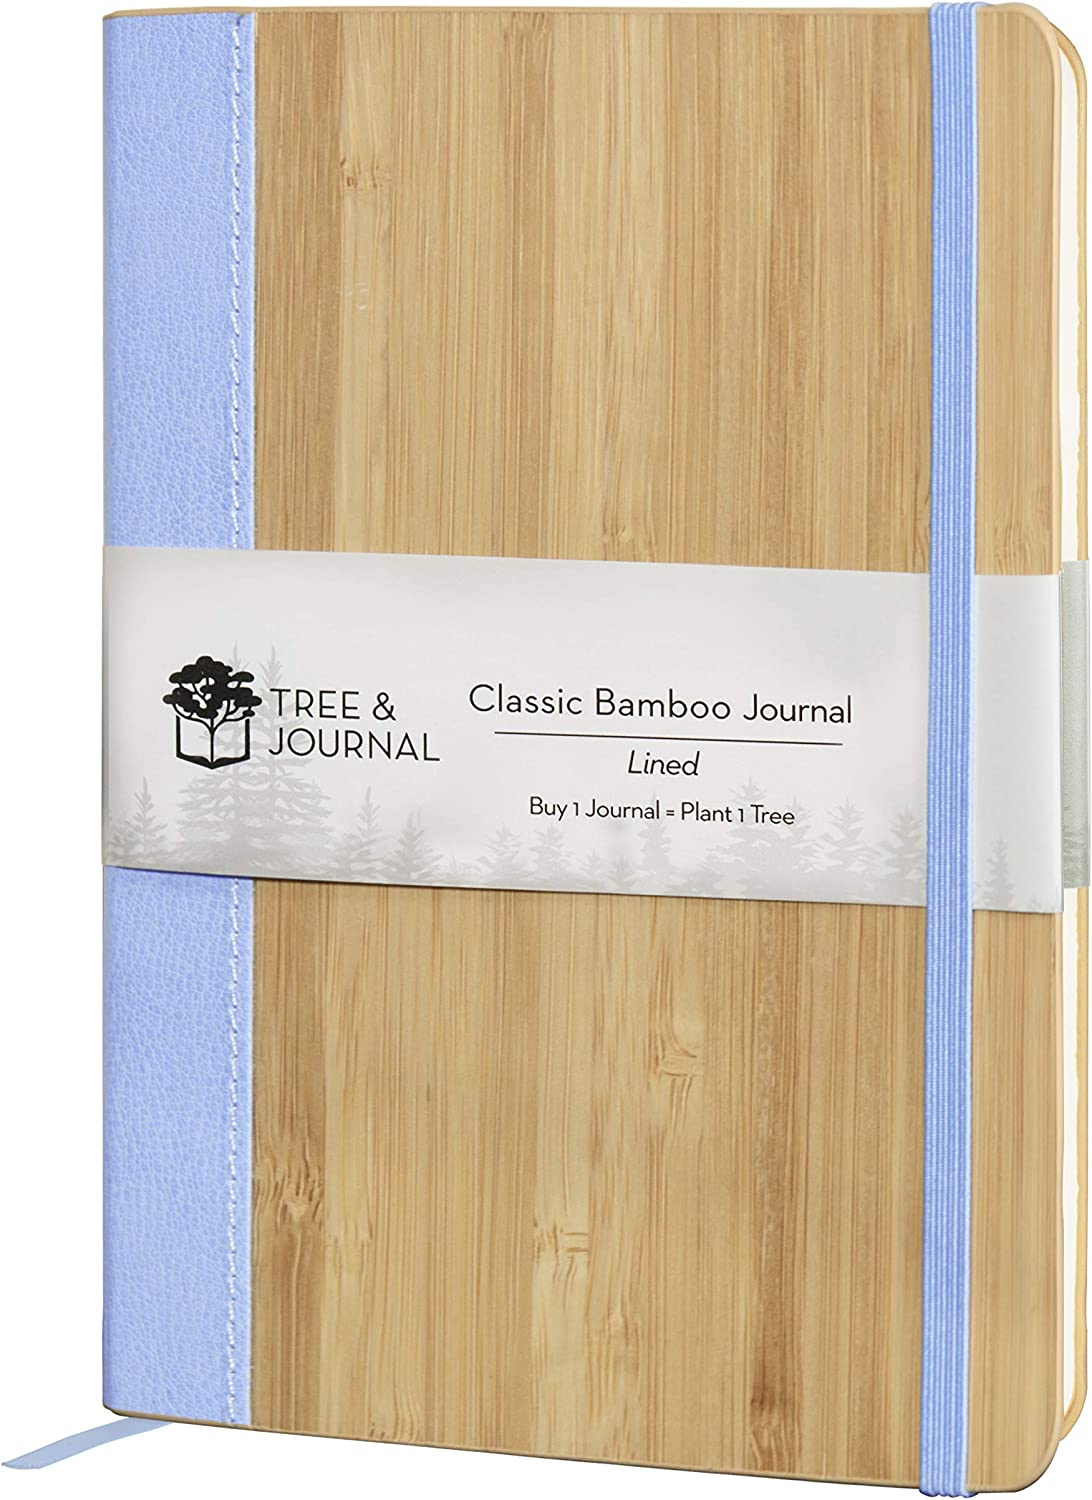 Hardcover Notebook Journal for Men Friendly Eco Women Outlet sale feature Spring new work 5x8in